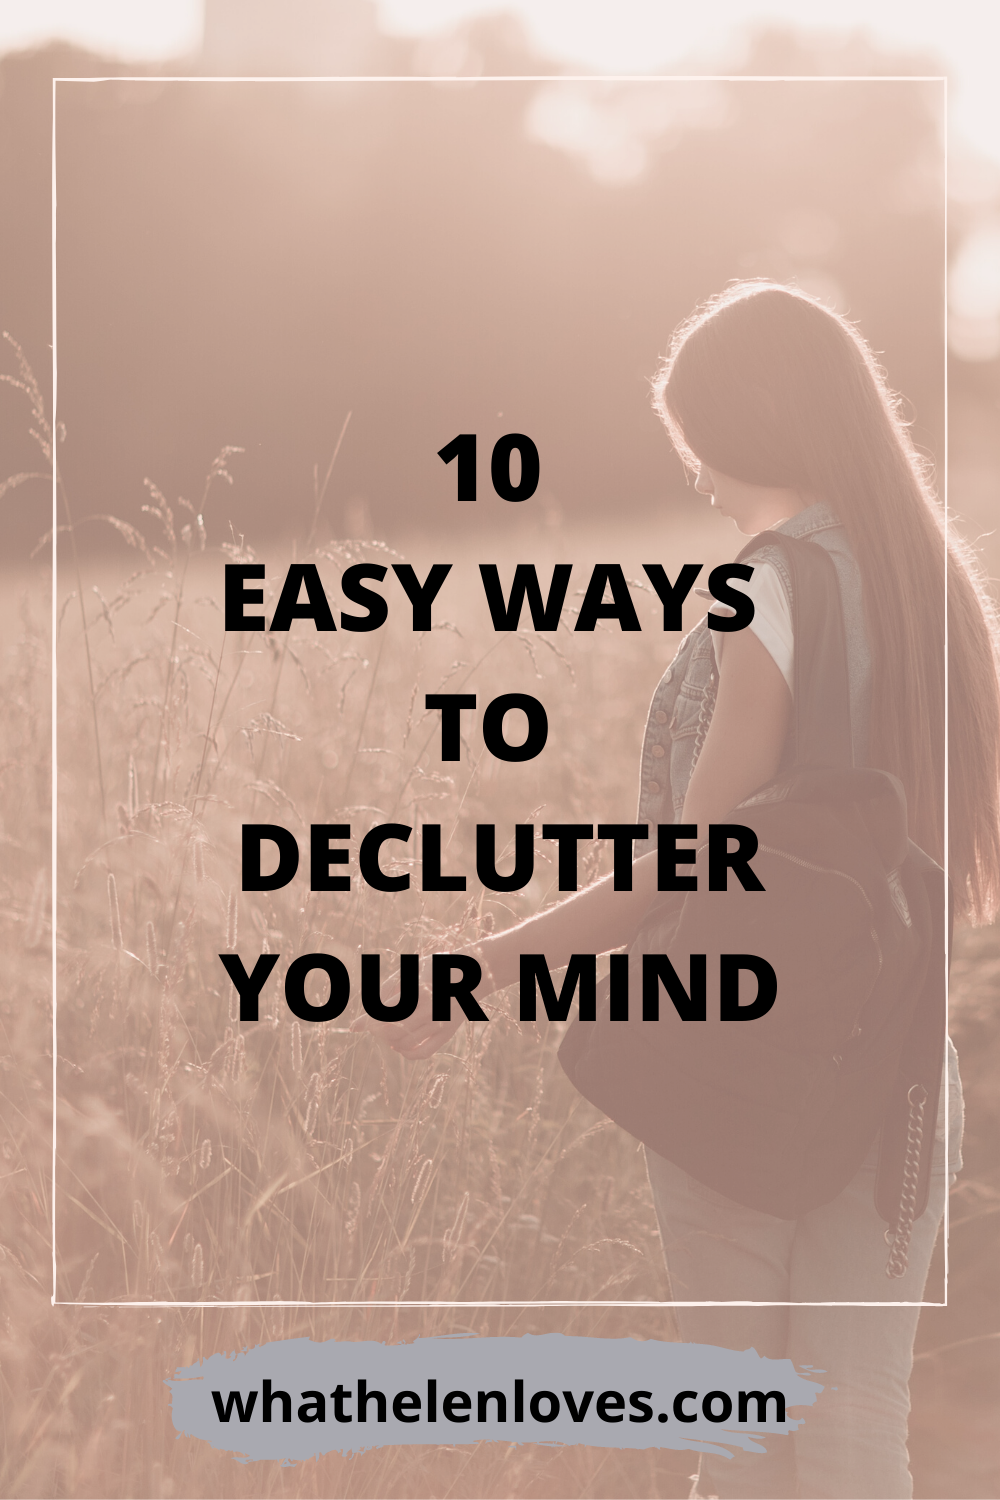 Pinterest pin for a post about 10 easy ways to declutter your mind.